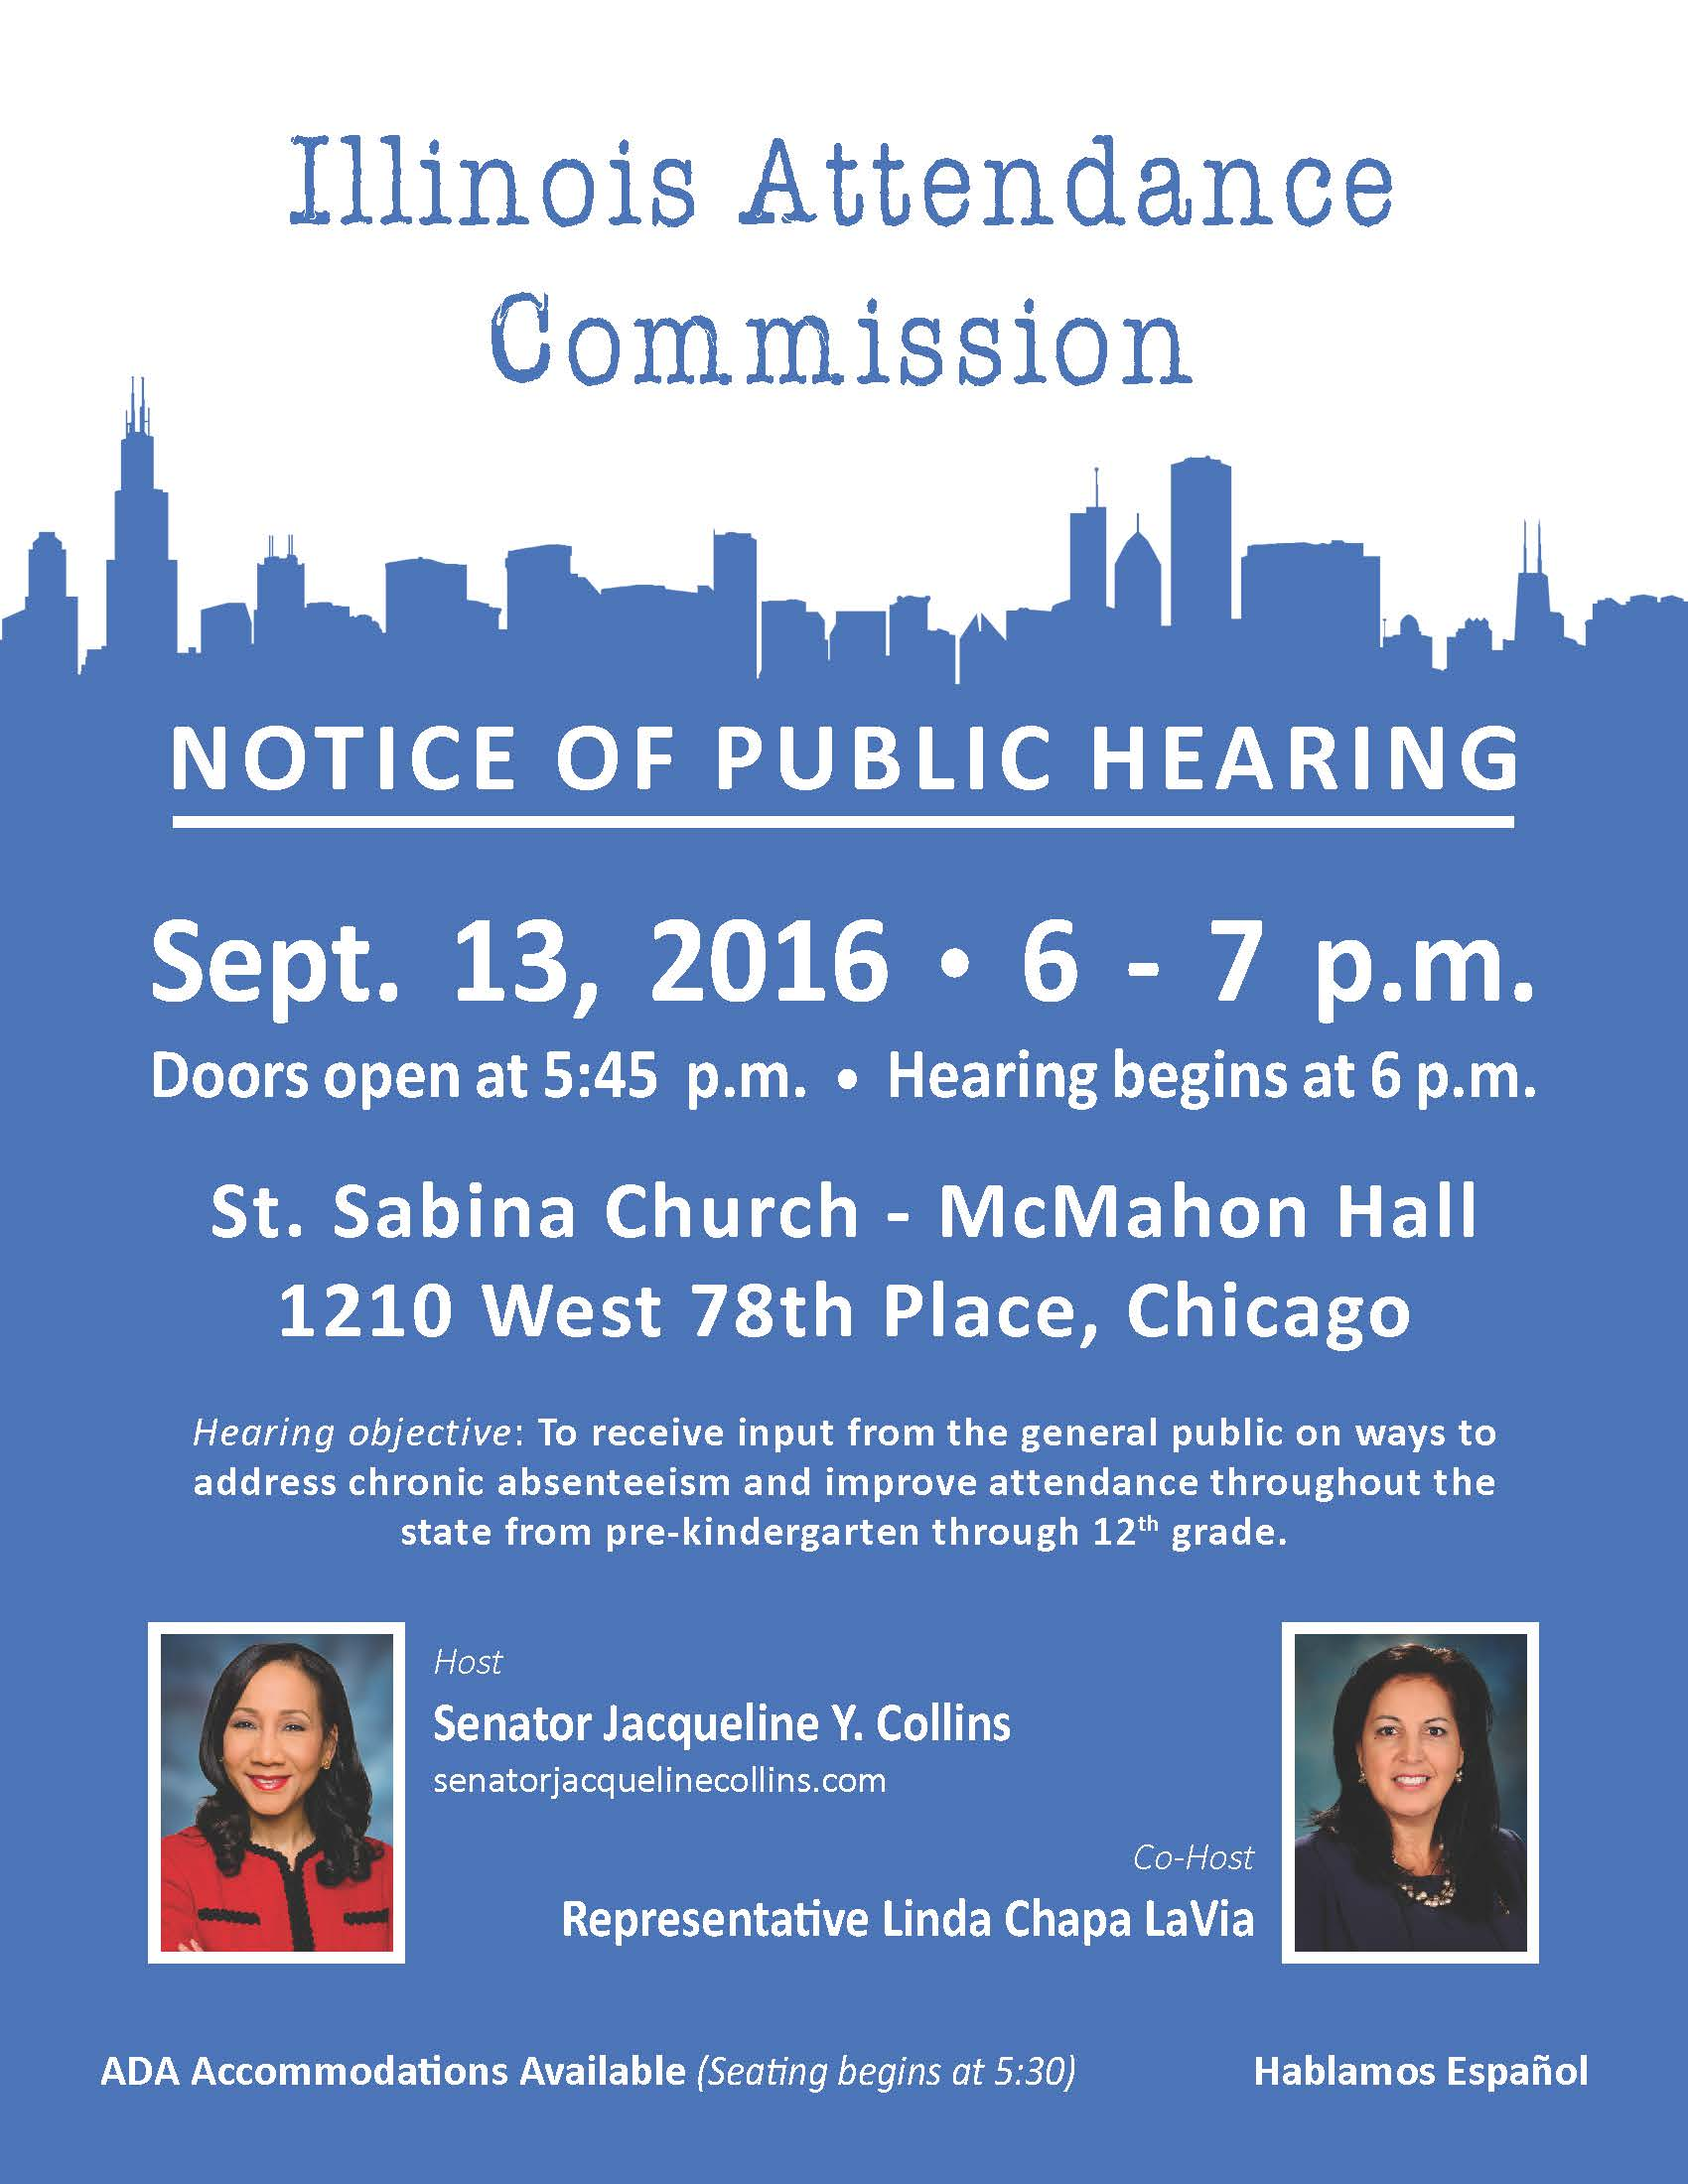 Attendance Commission hearing flyer